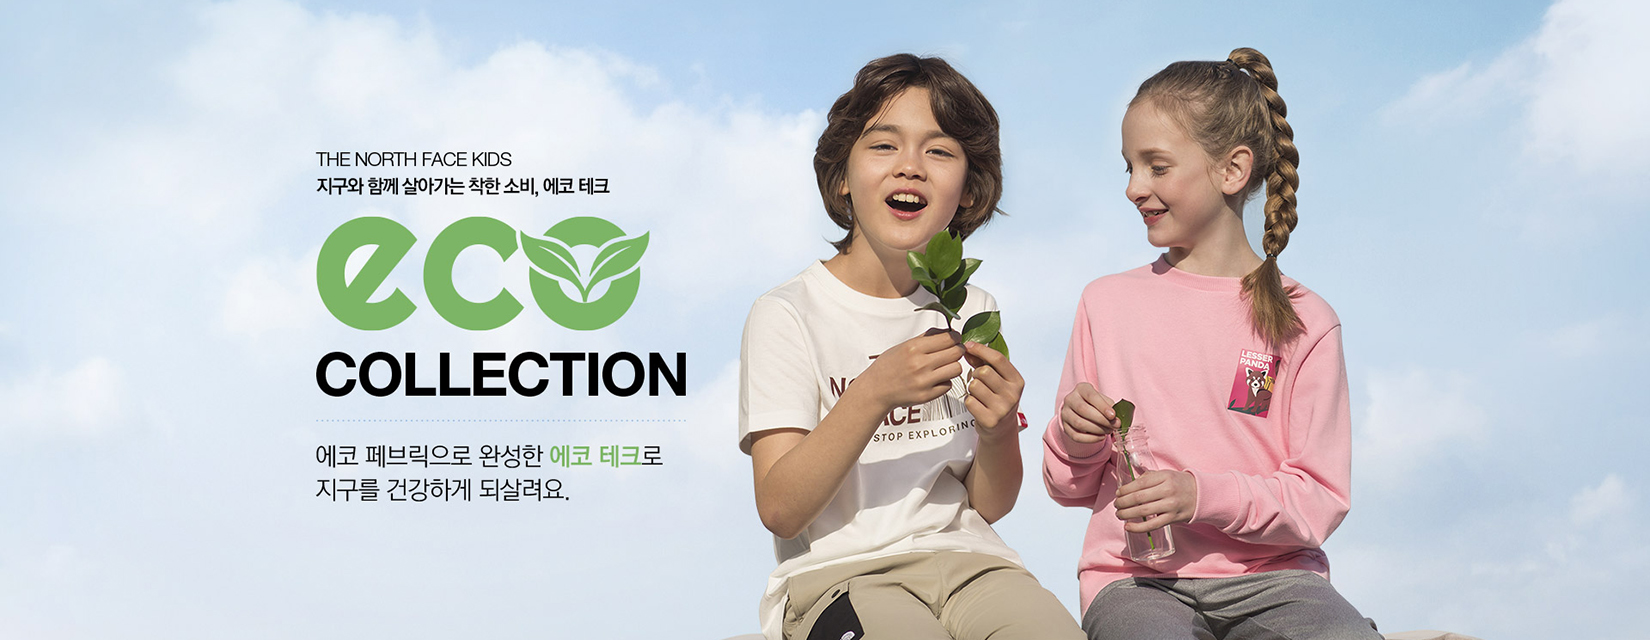 KIDS ECO COLLECTION